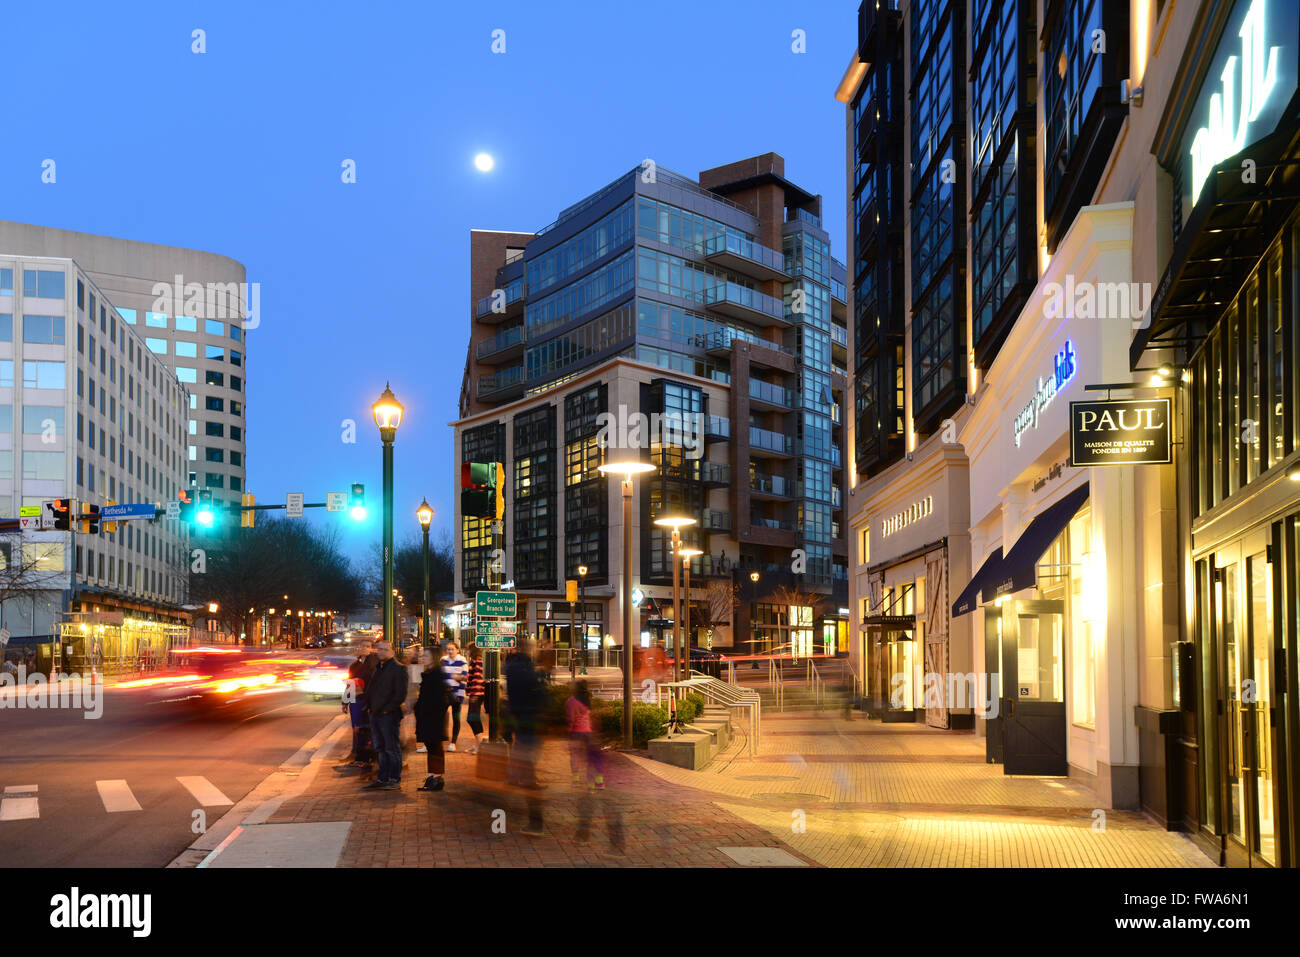 usa-maryland-md-city-of-bethesda-at-night-suburb-of-washington-dc-FWA6N1.jpg